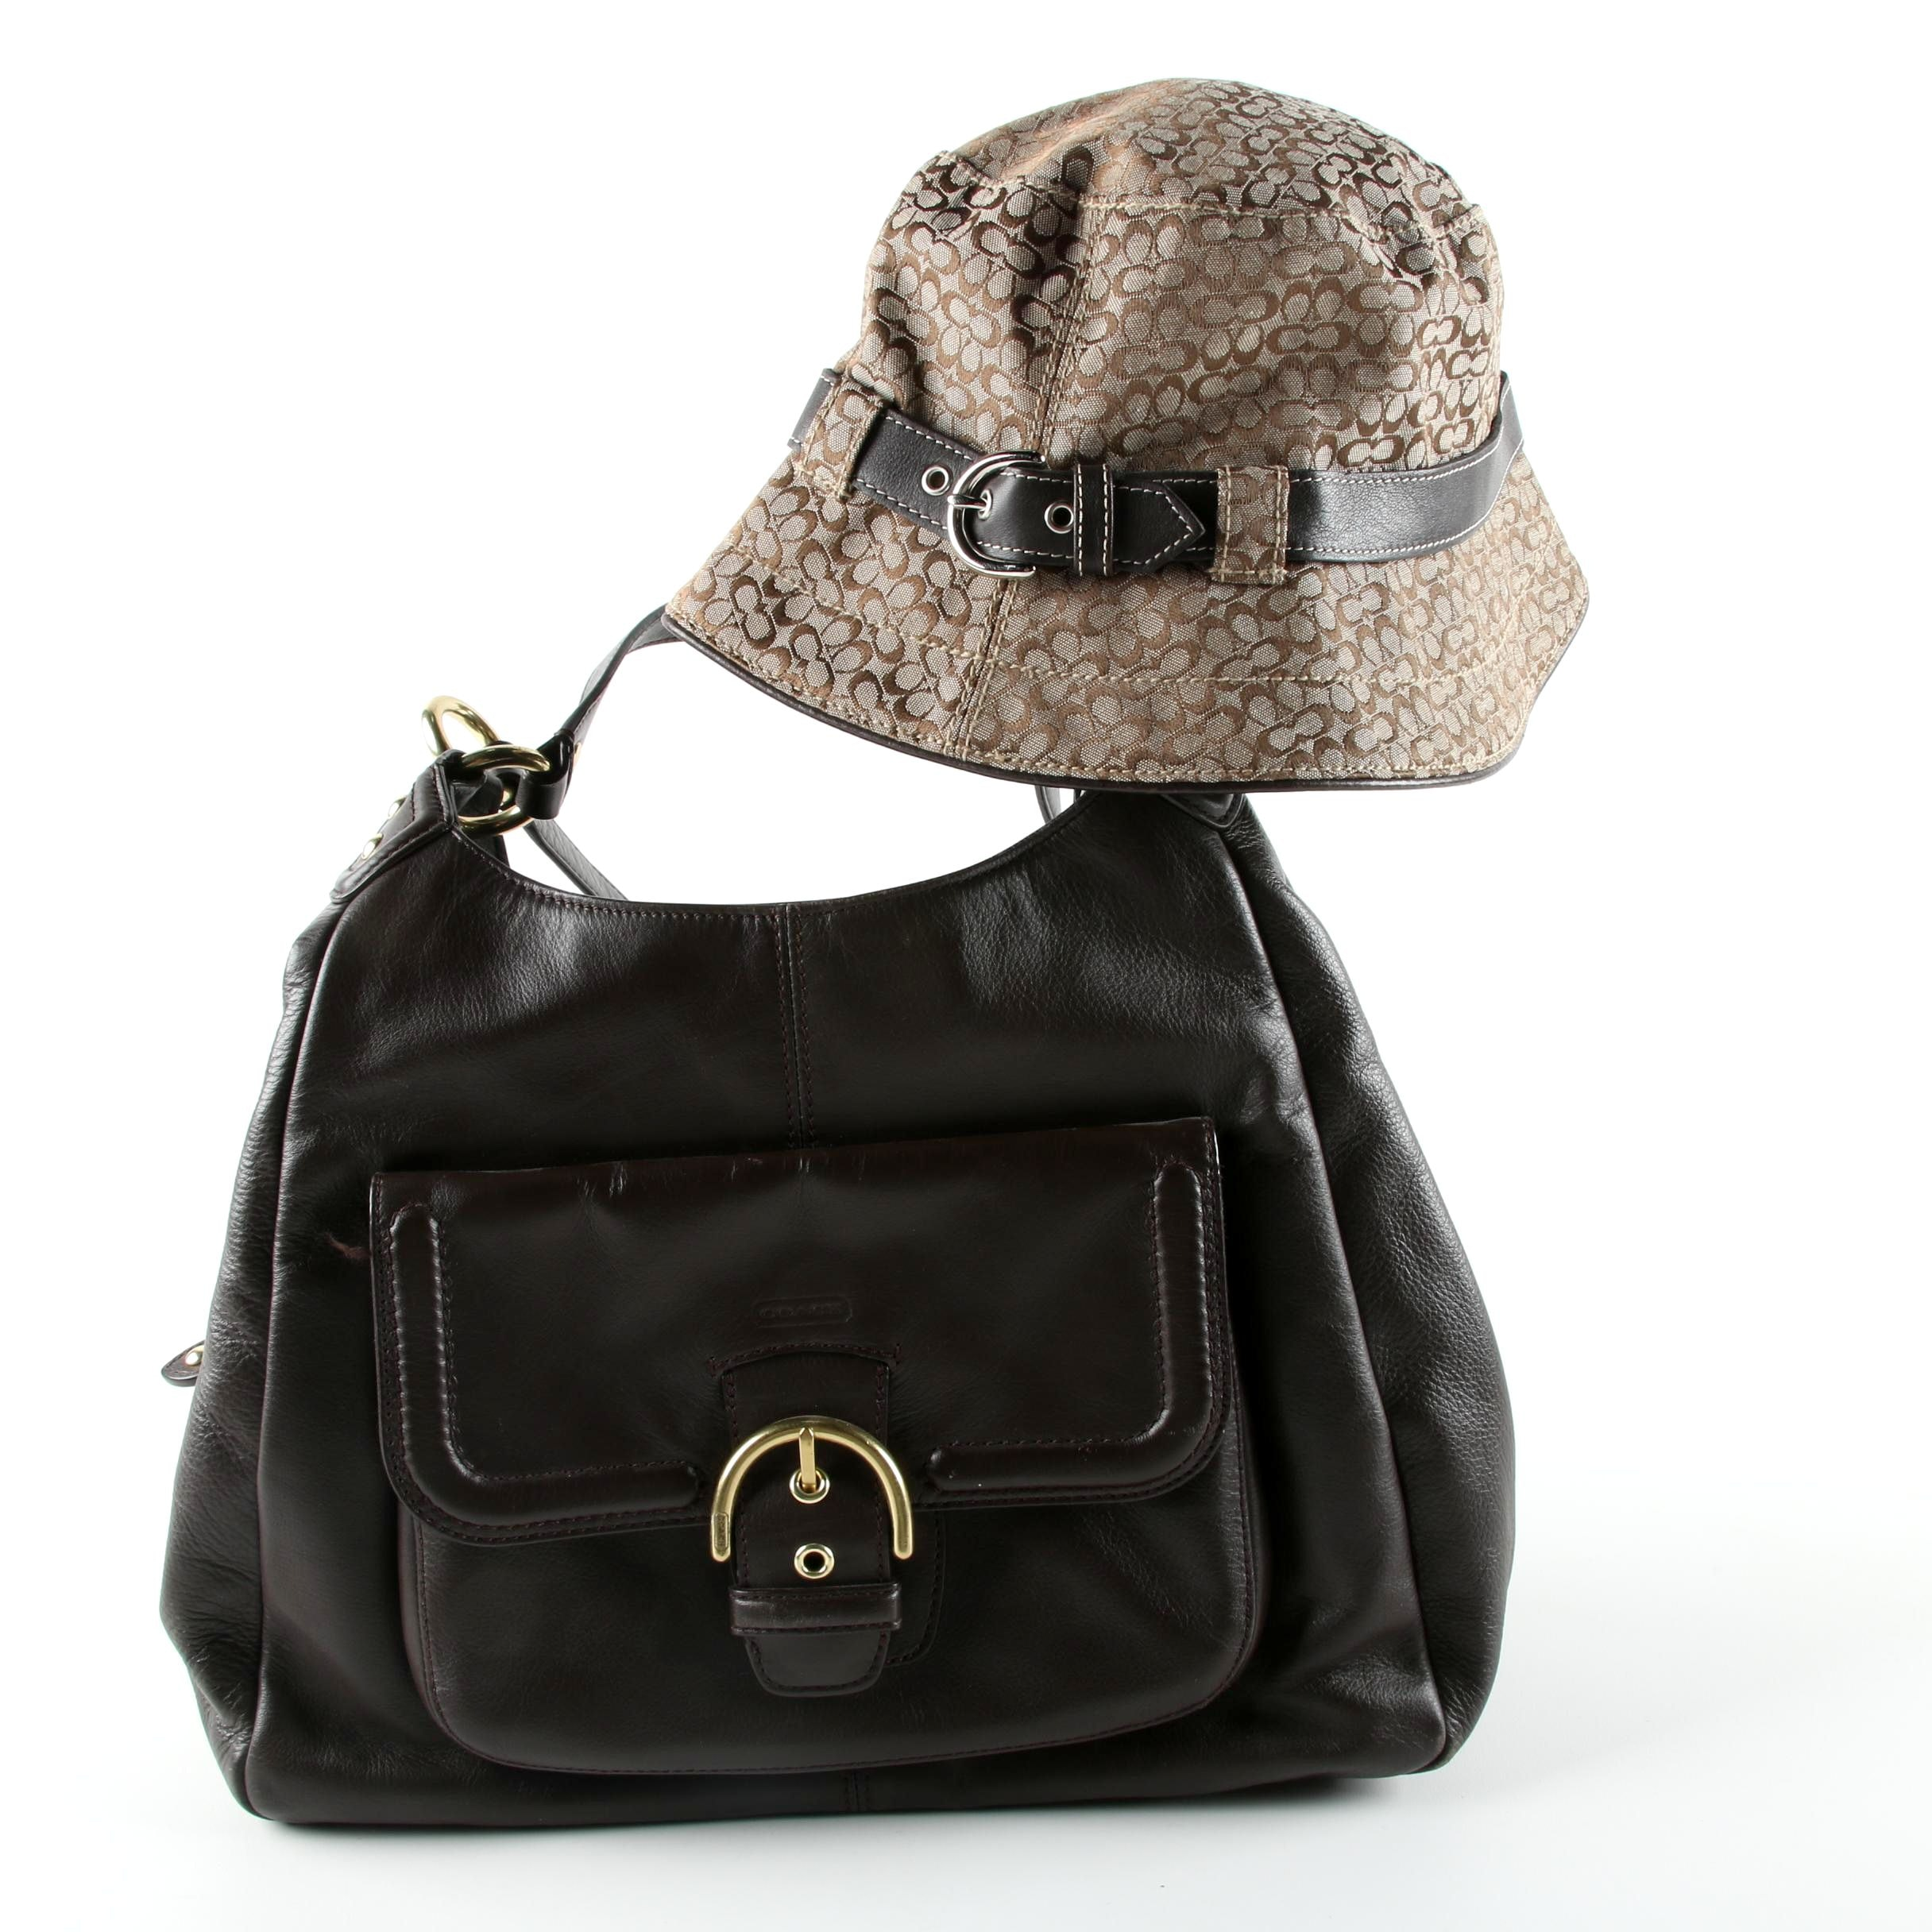 Coach Campbell Dark Brown Leather Hobo Bag and Canvas Bucket Hat